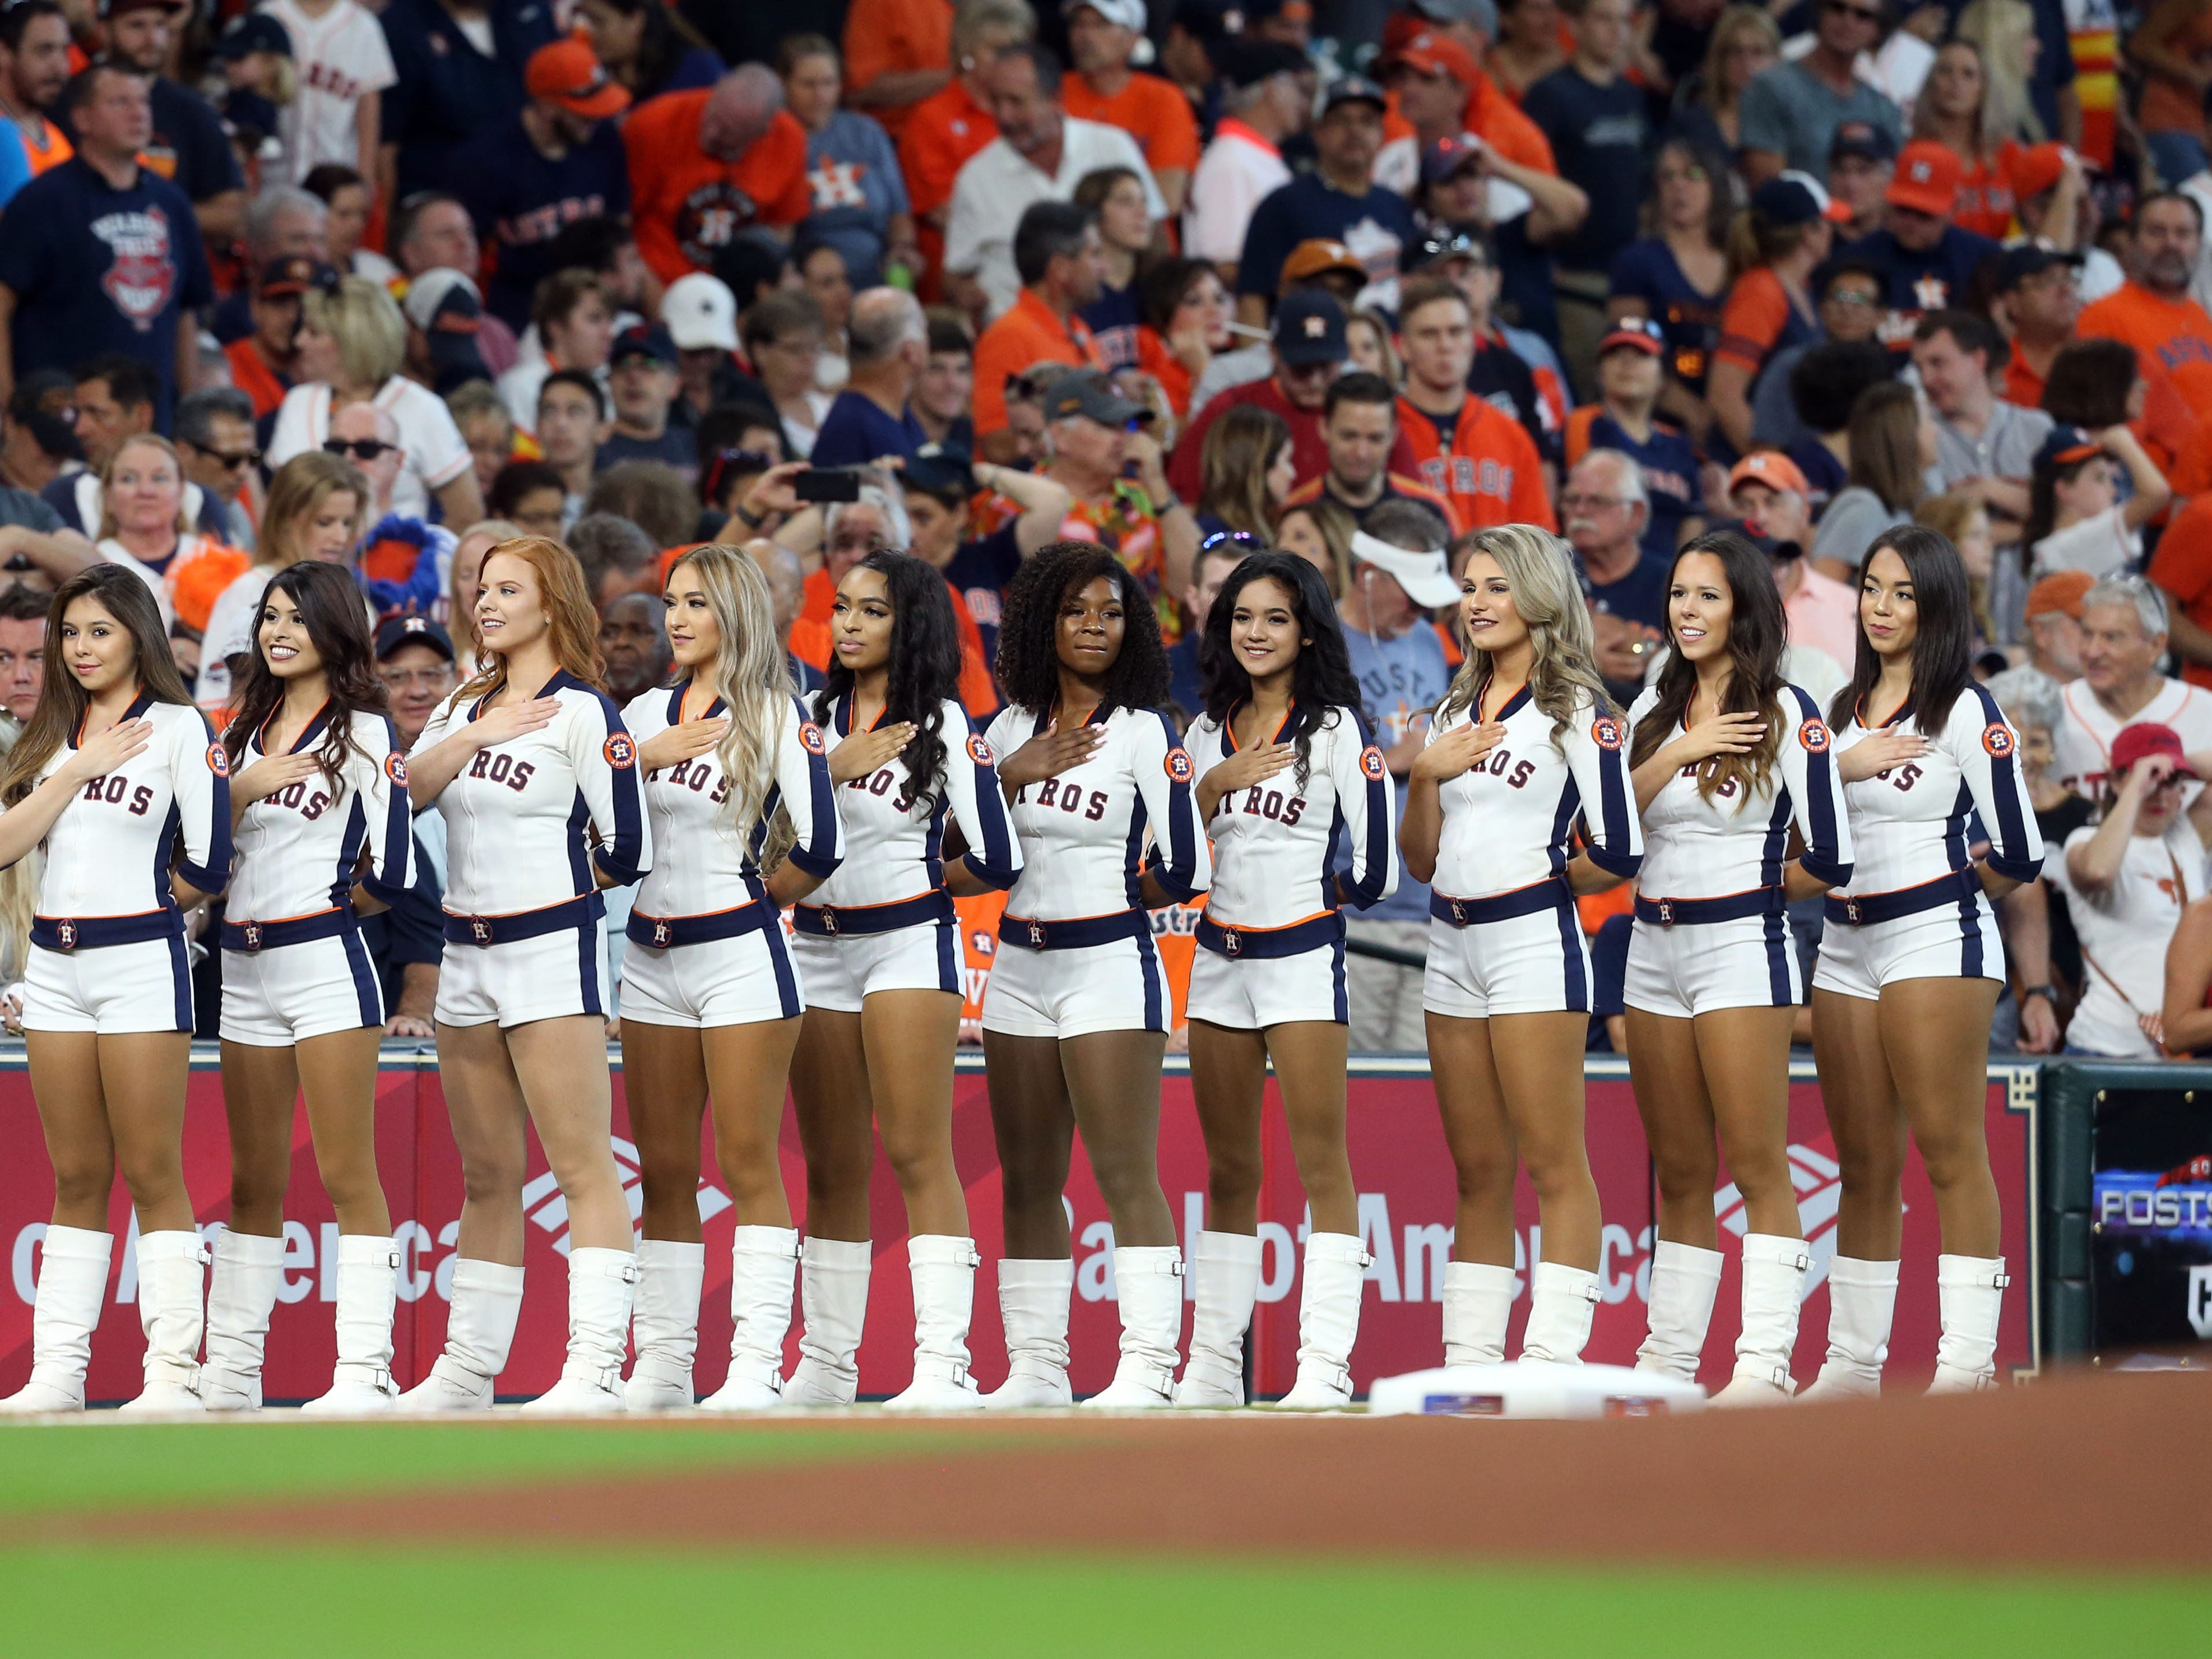 ALDS Game 2: Astros cheerleaders stand for the national anthem.